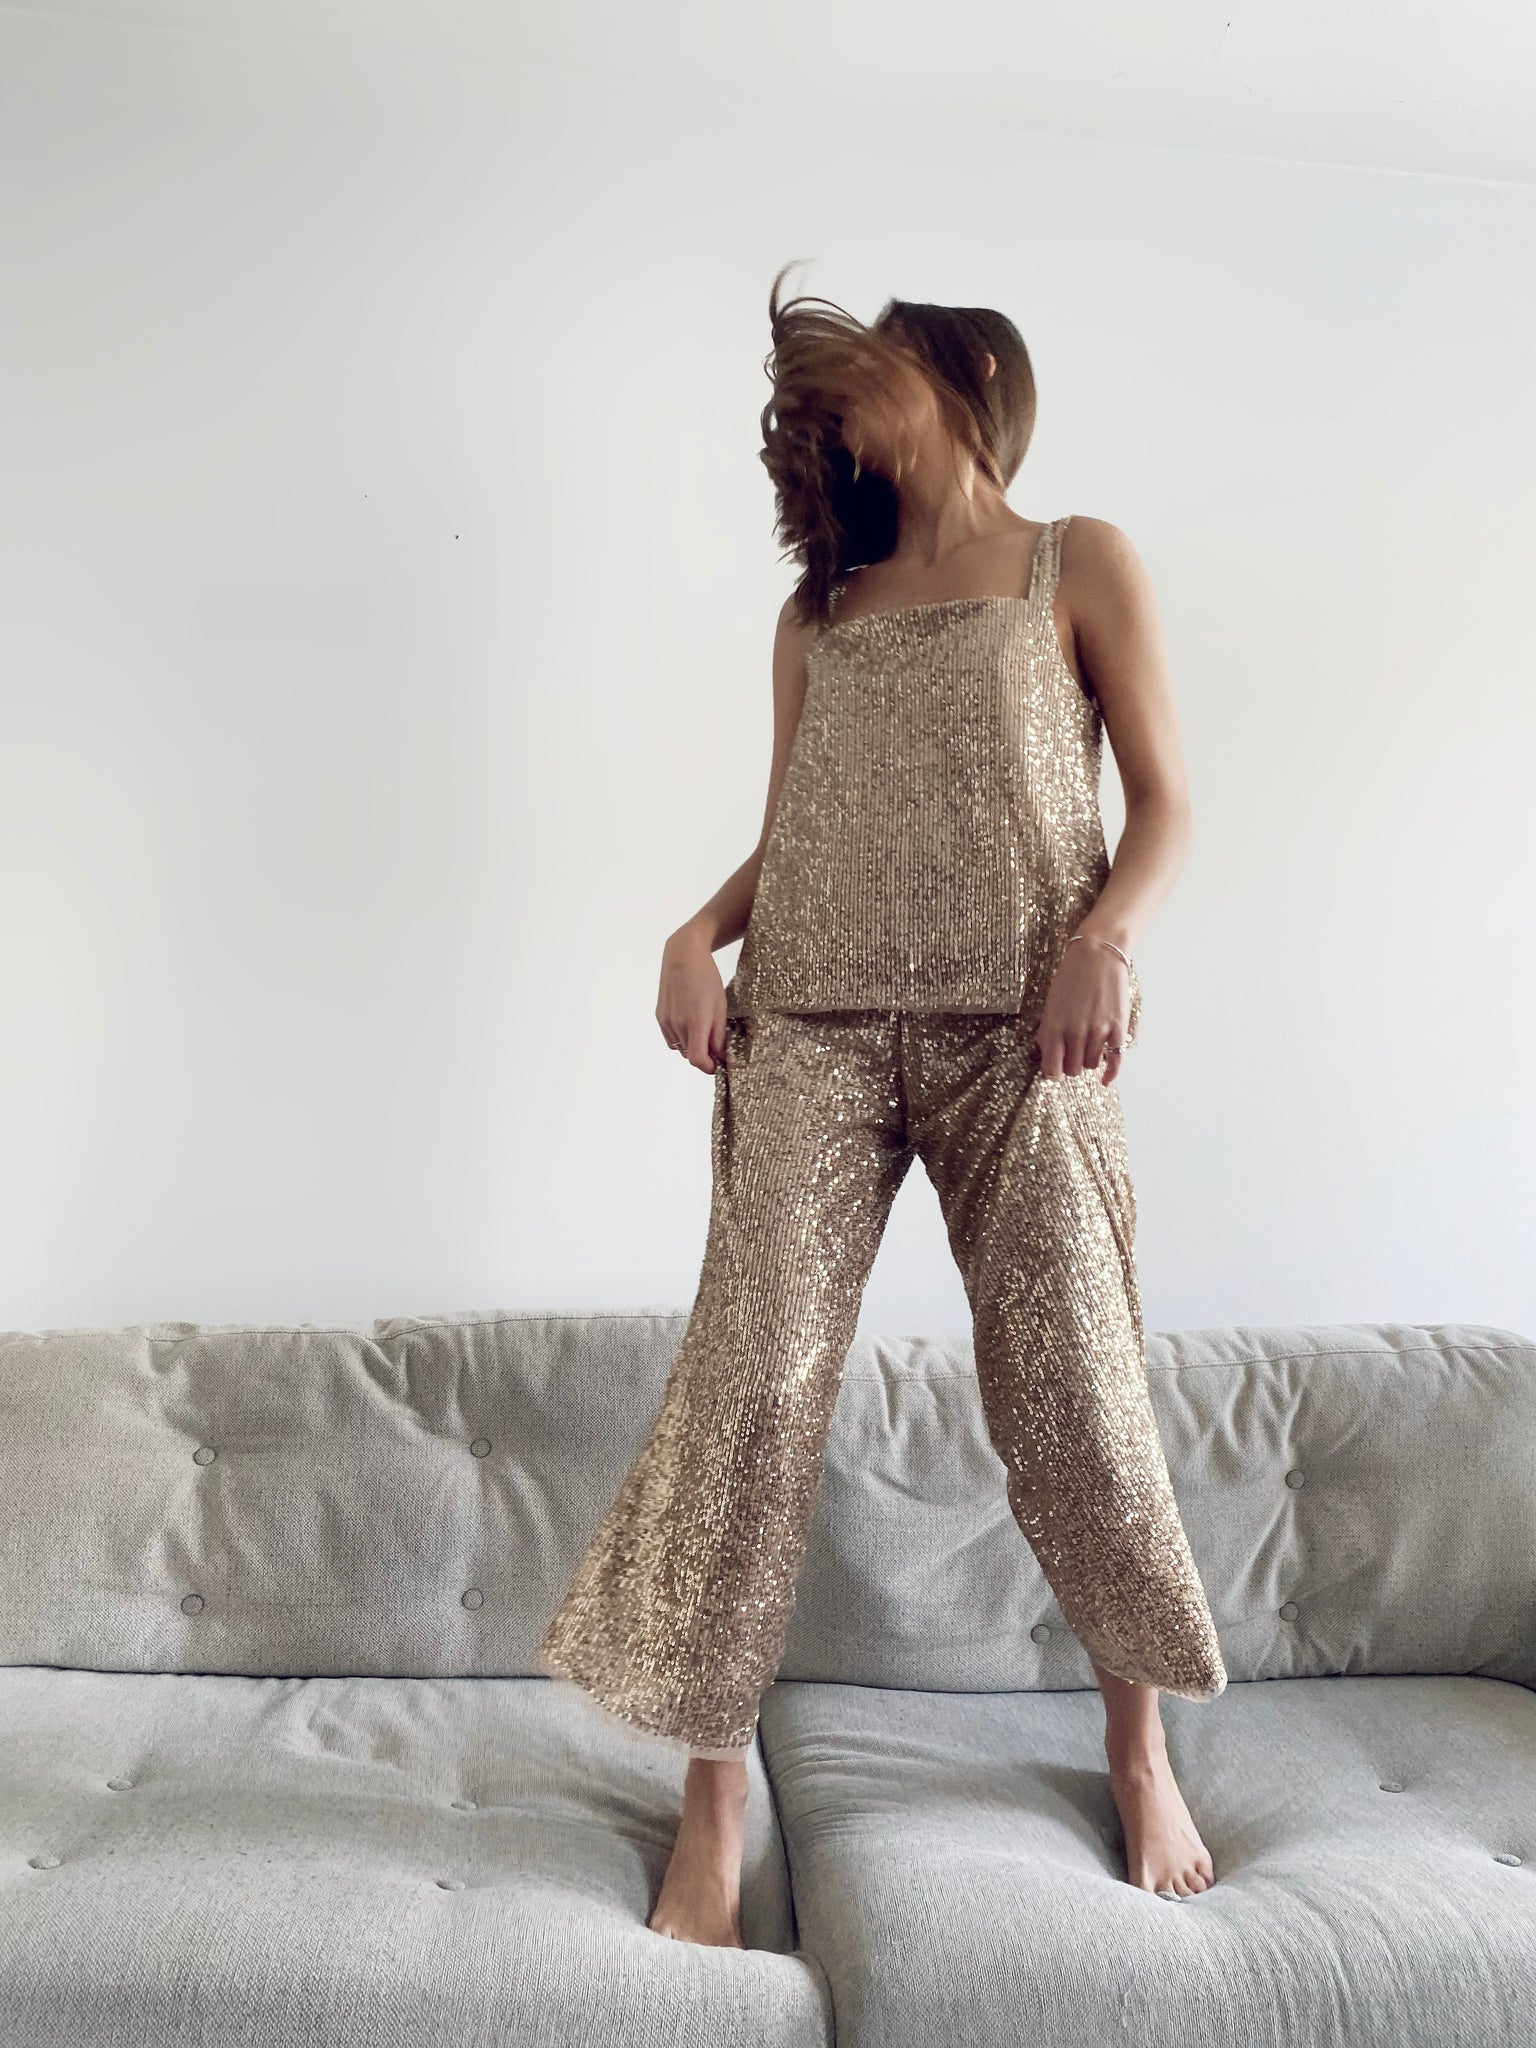 9776 - BRIA - SEQUINS GOLDEN PANTS -BYOU by Patricia Gouveia